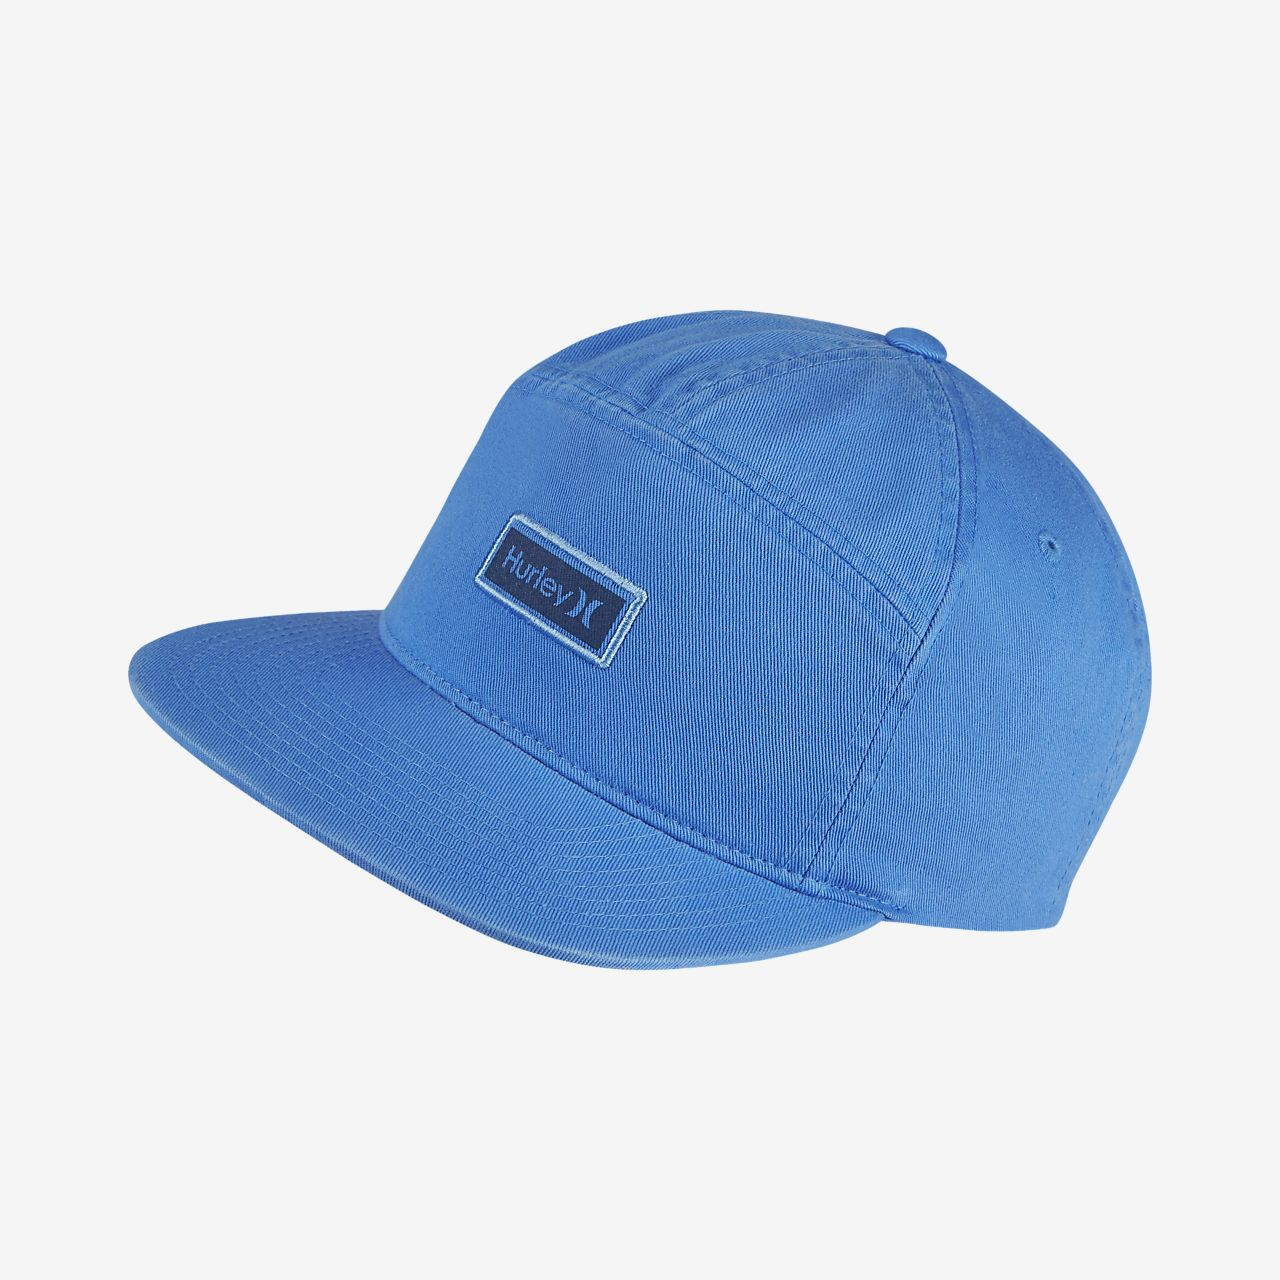 Hurley Octane Adjustable Hat